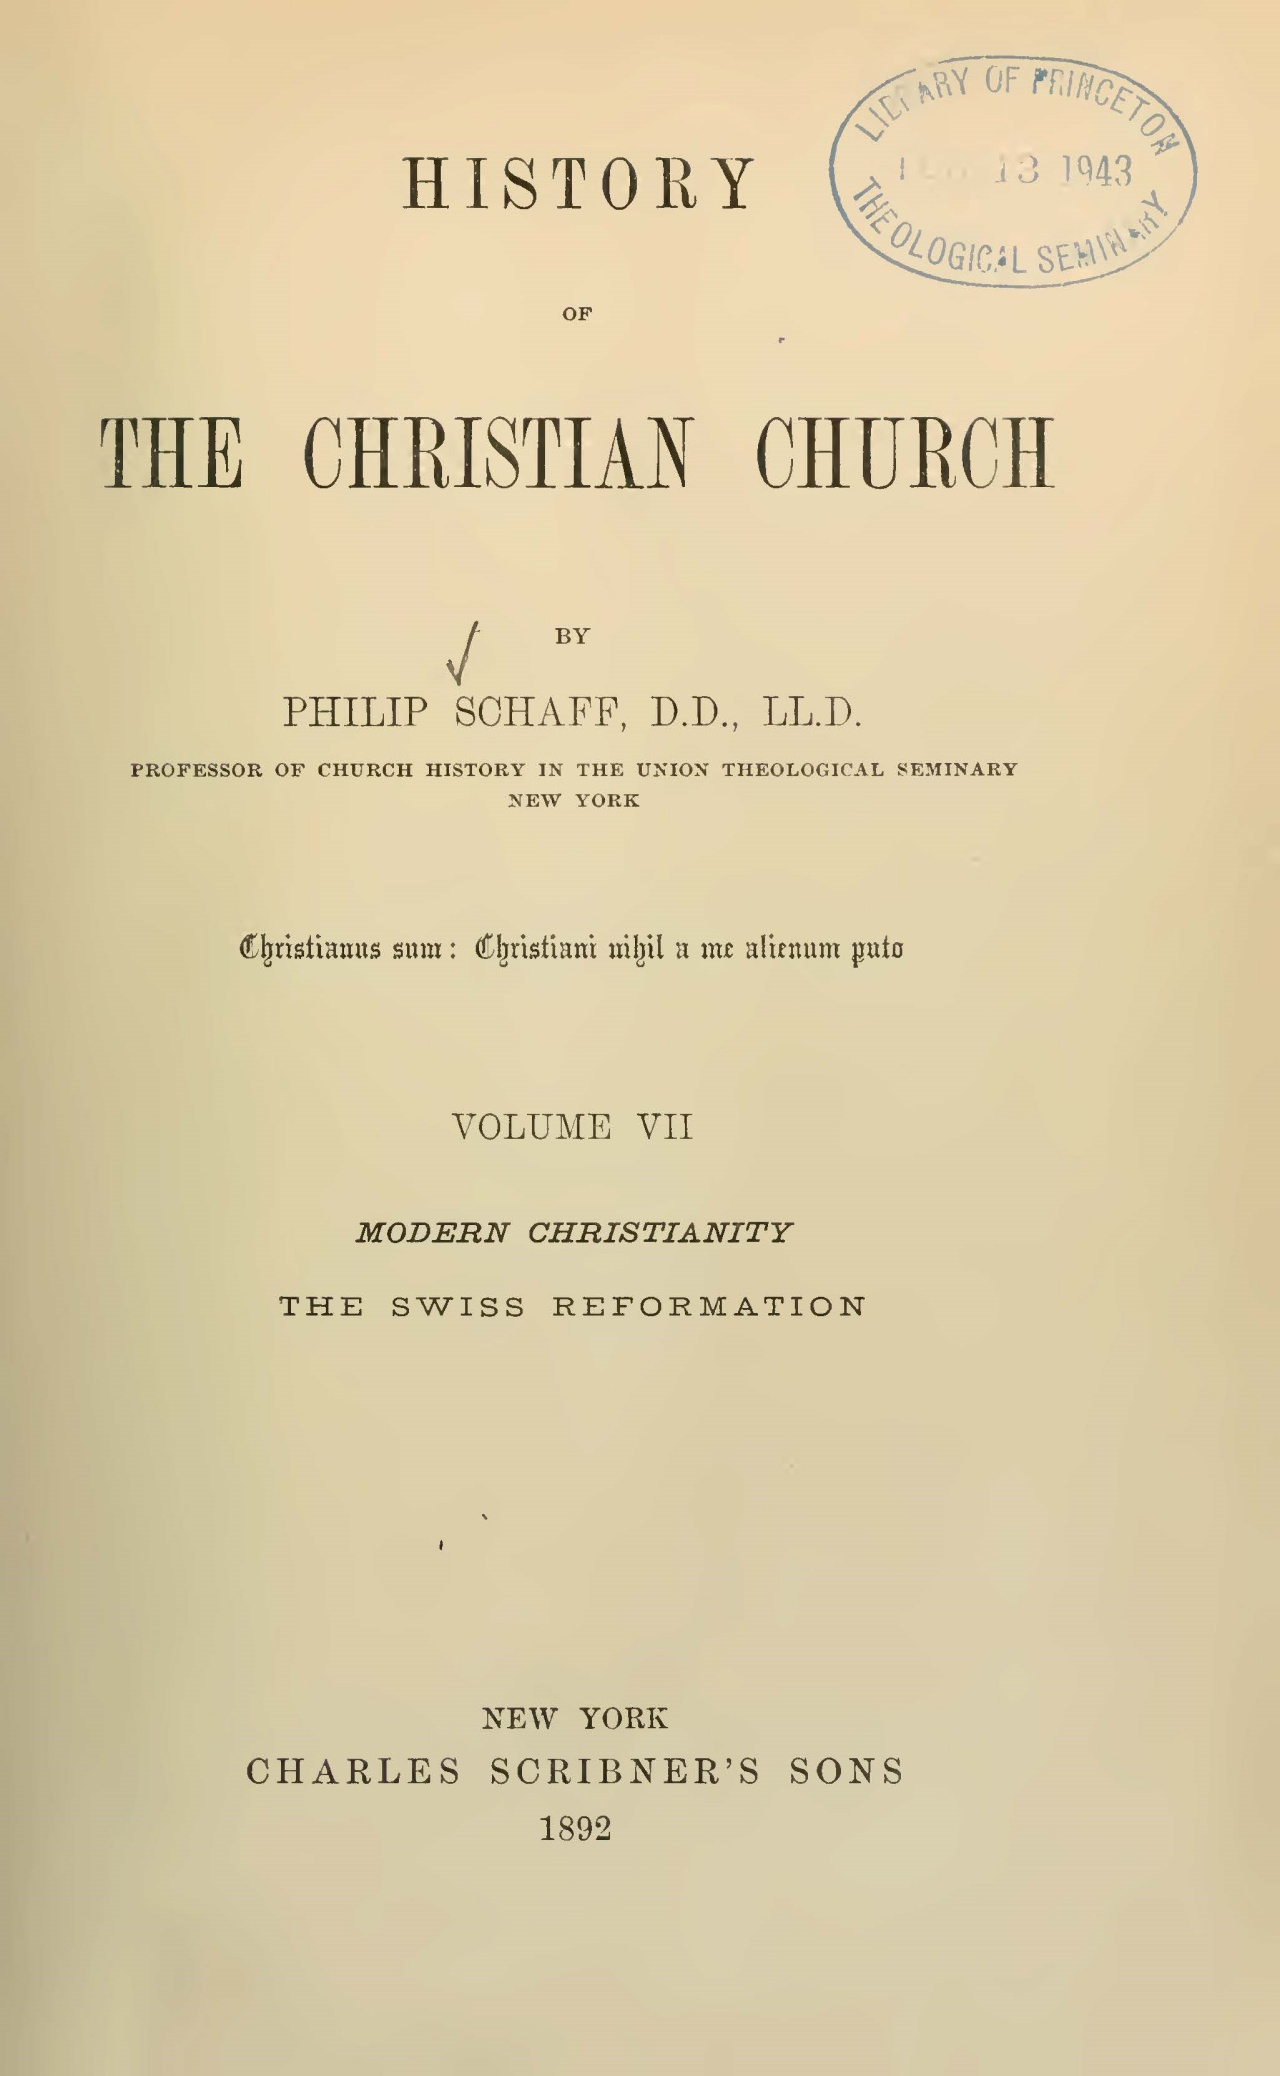 Schaff, Philip, History of the Christian Church, Vol. 7 Title Page.jpg